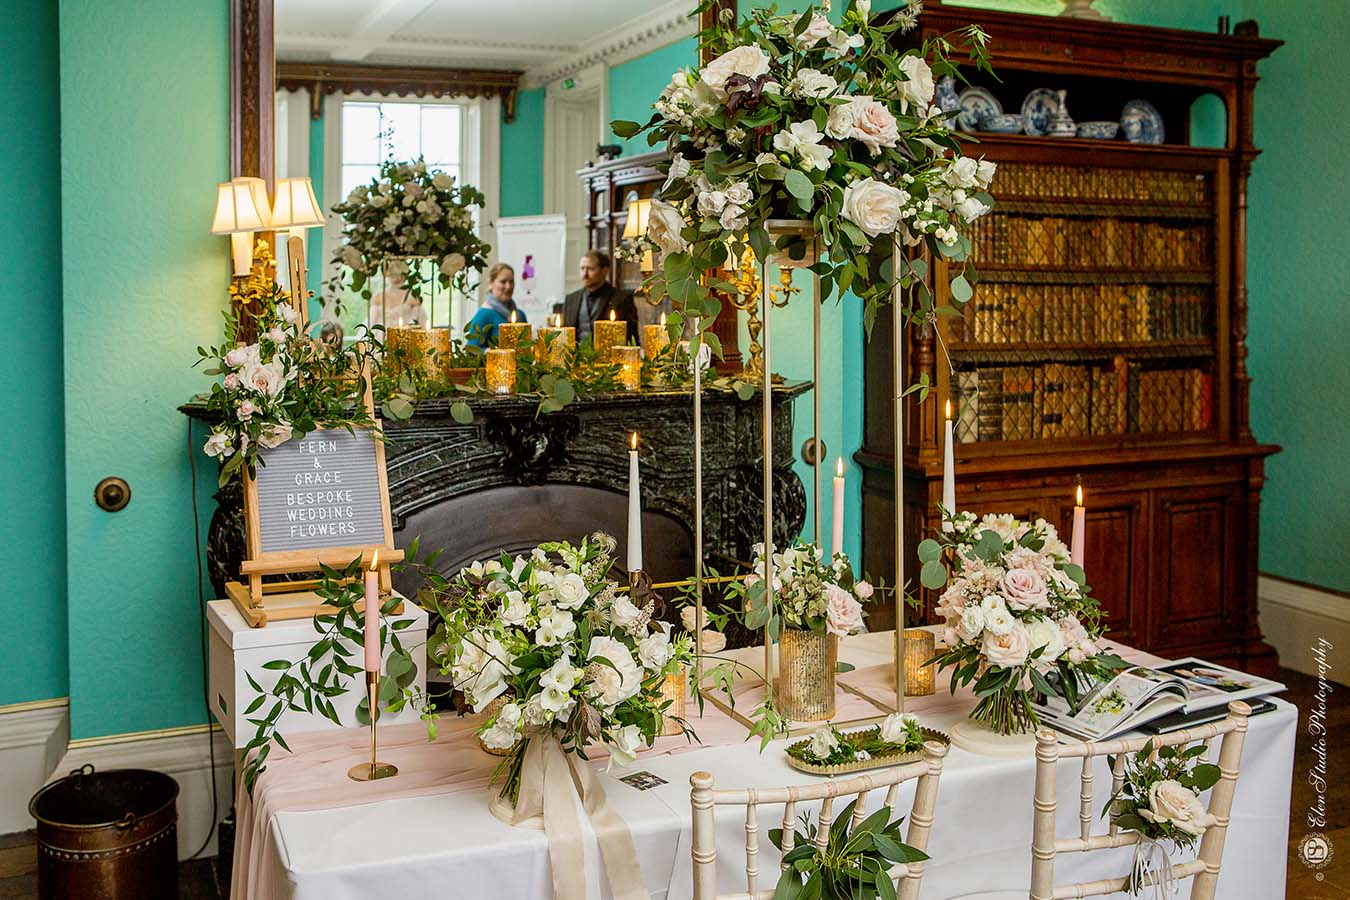 Prestwold Hall Wedding Fair, Autumn 2018